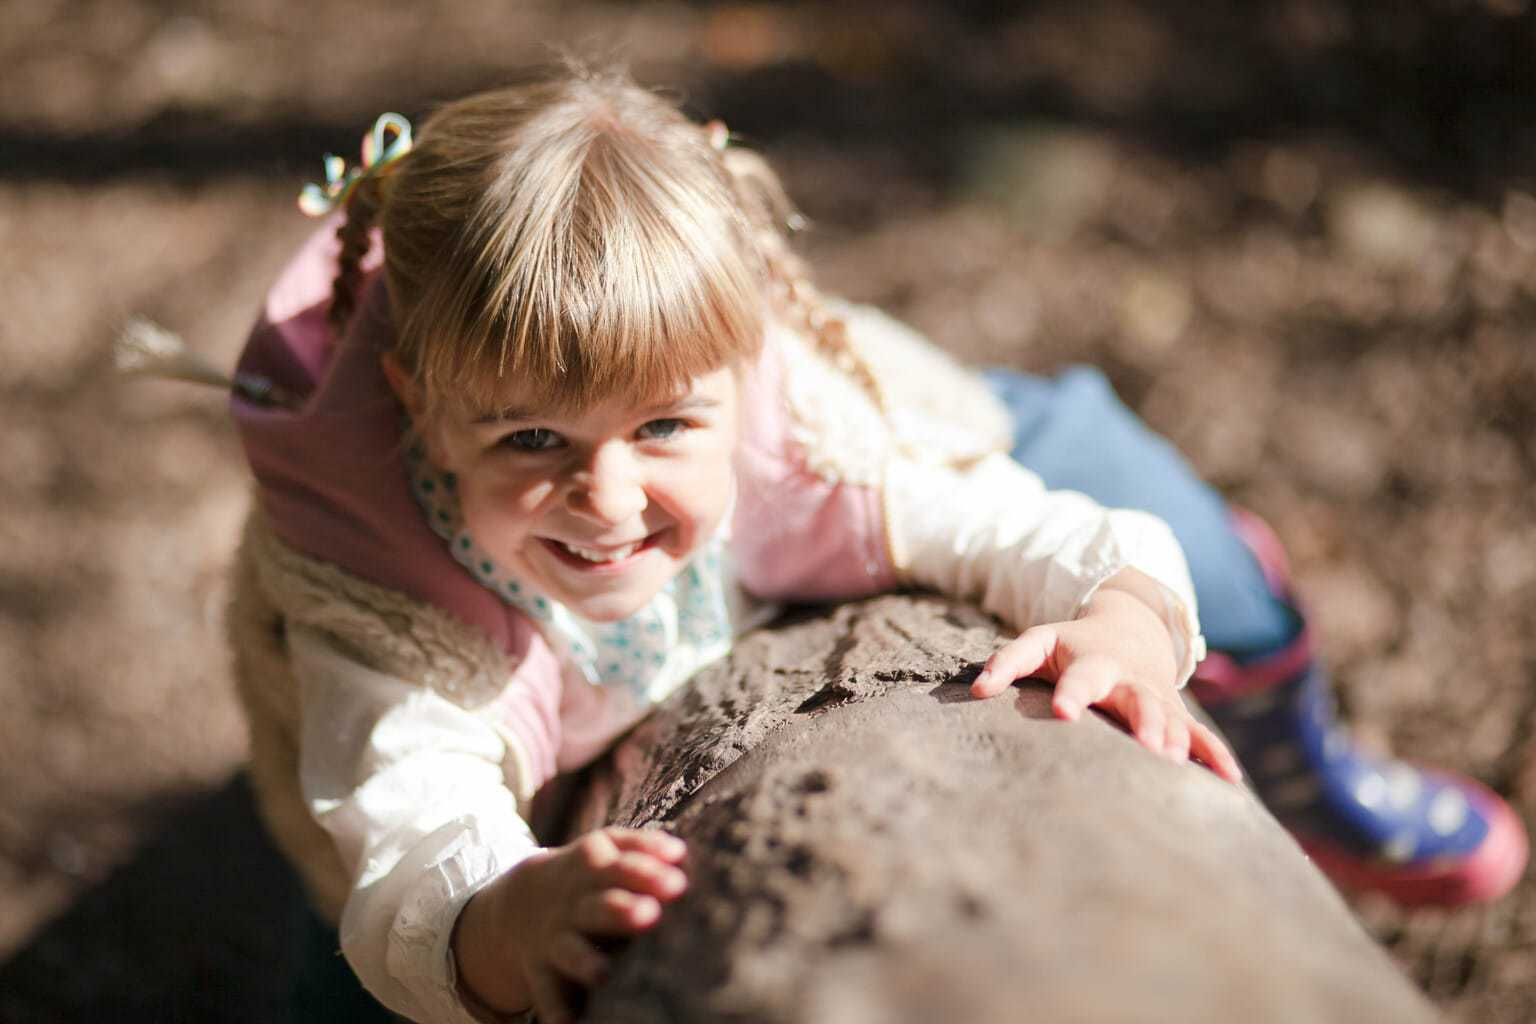 Days Out with Kids – Muck Boots and Little Bird!